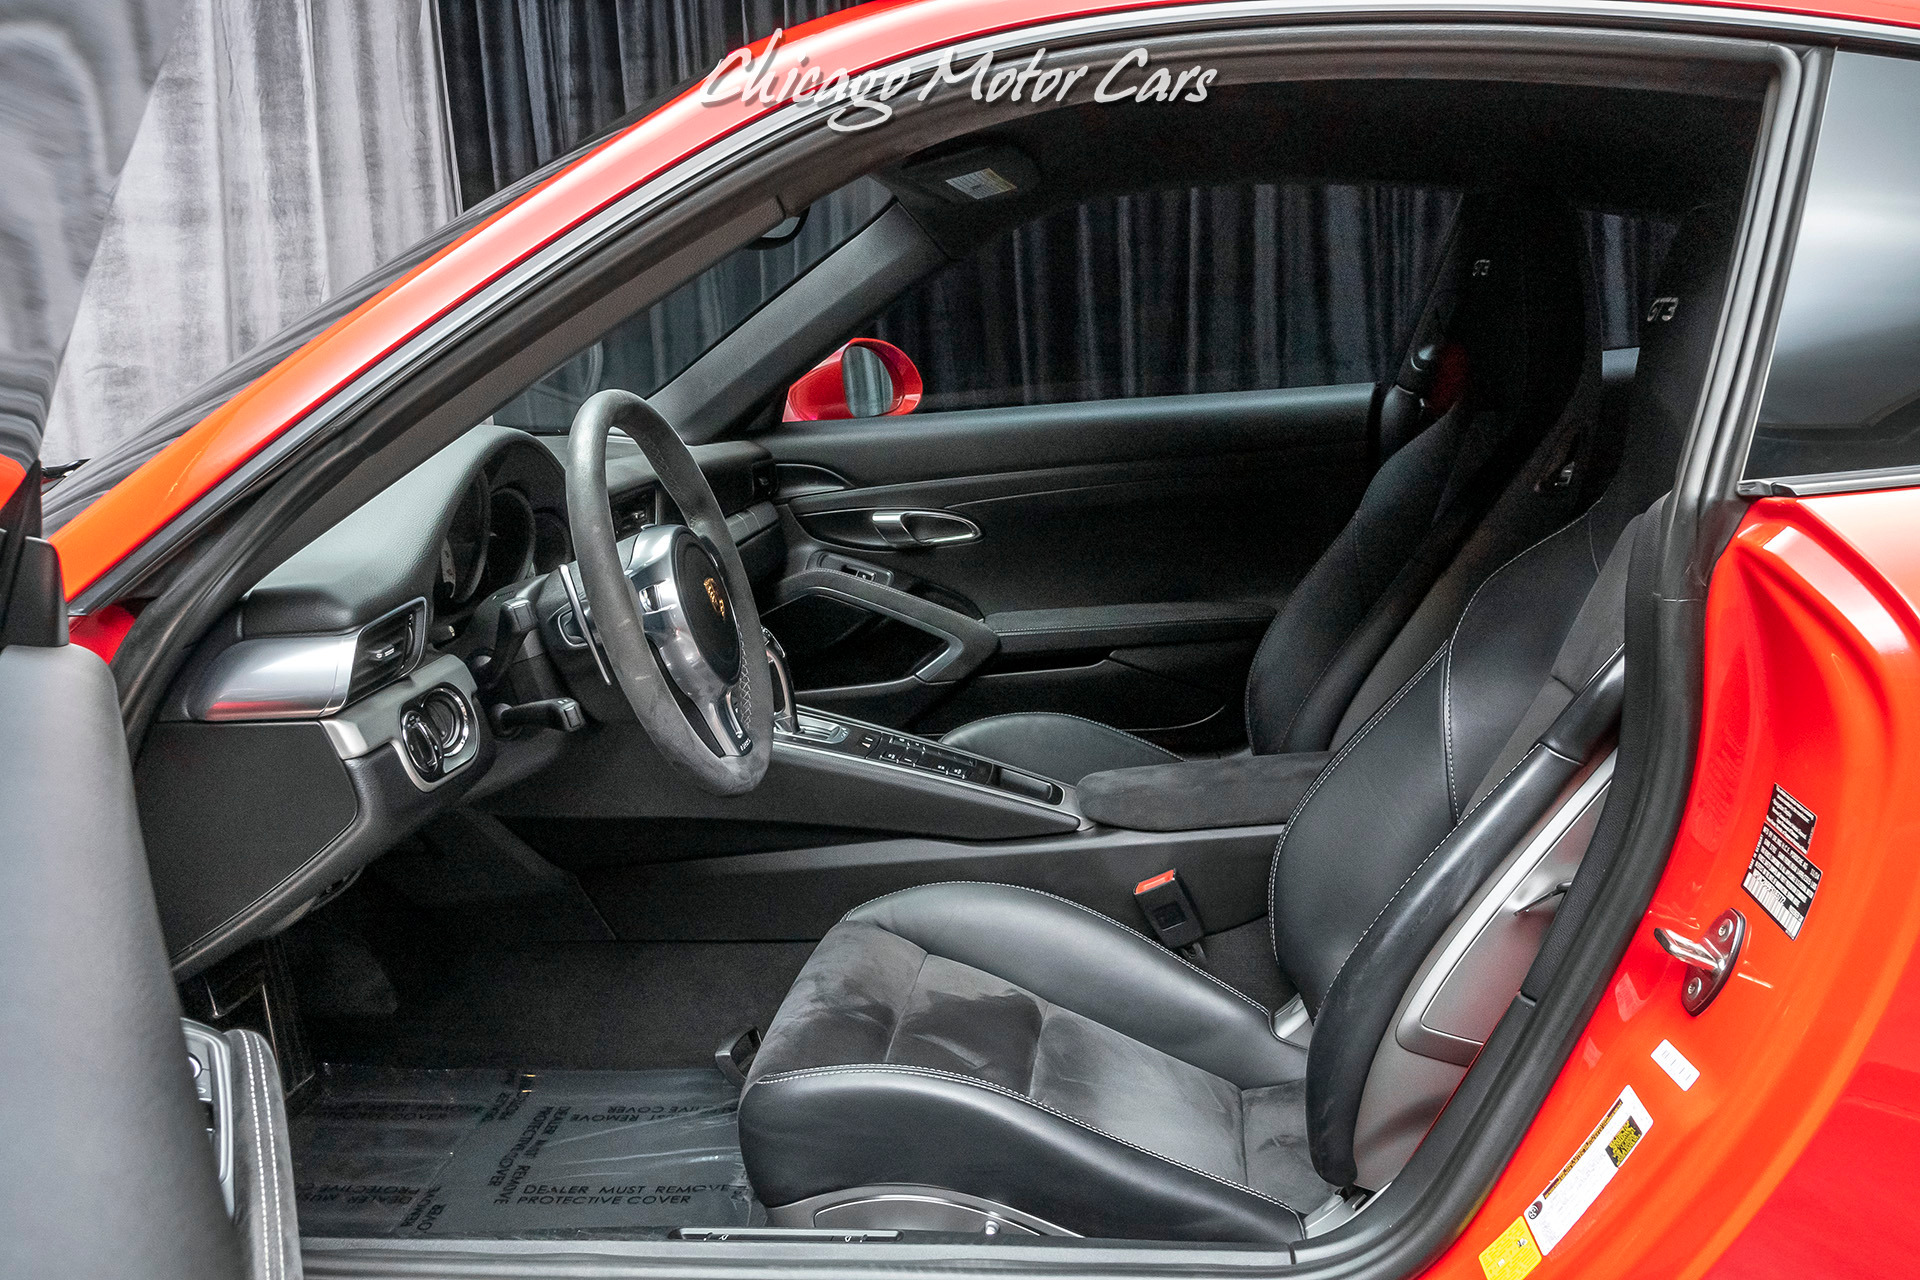 Used-2015-Porsche-911-GT3-Coupe-MSRP-139K-PDK-TRANS-FRONT-LIFT-AFTERMARKET-EXHAUST